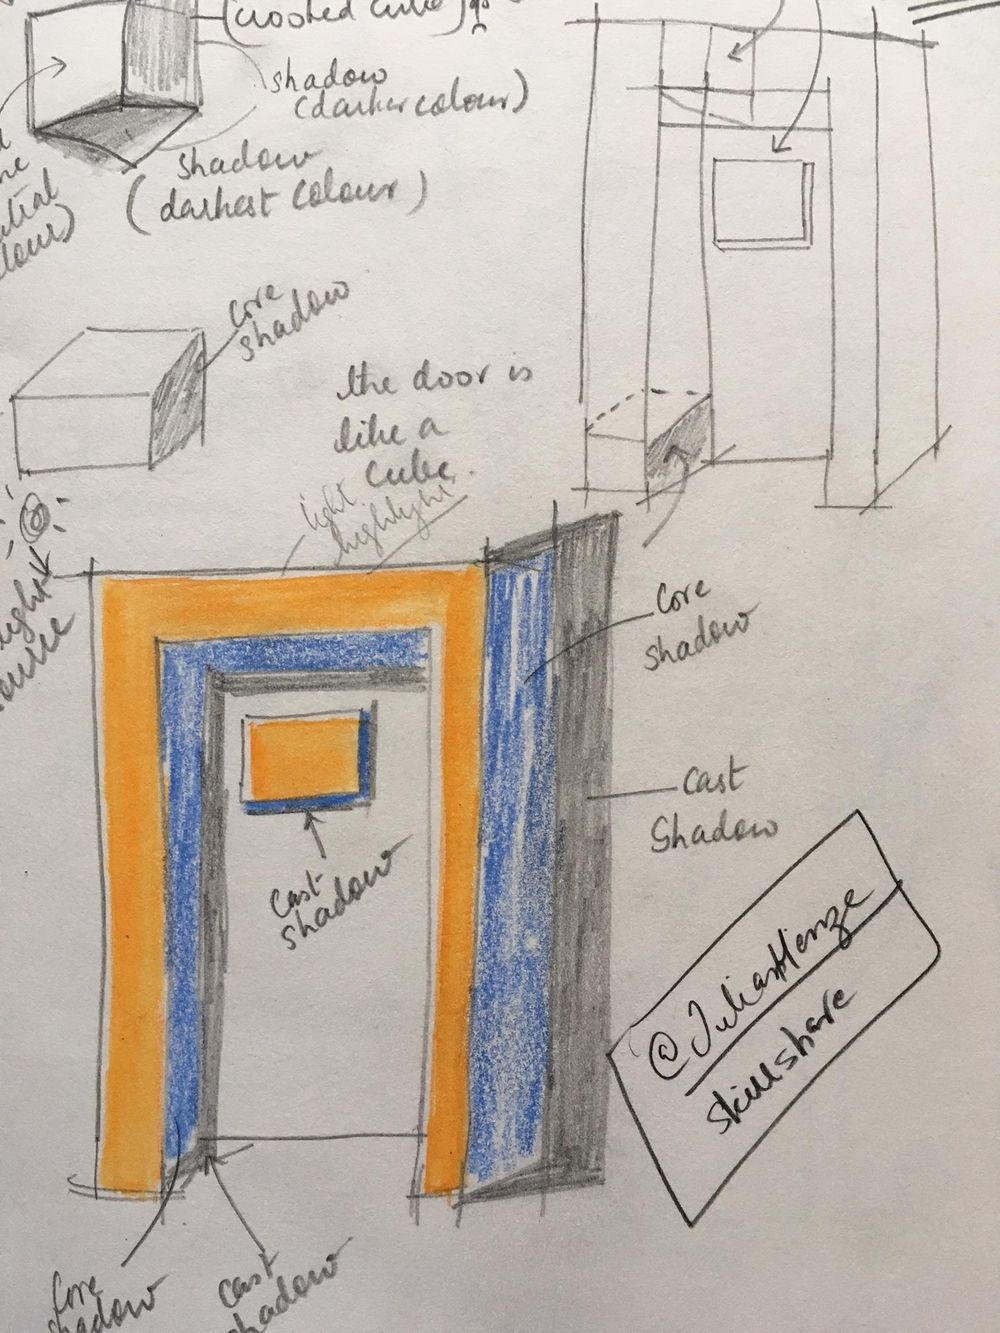 Every door tells a story! - image 2 - student project